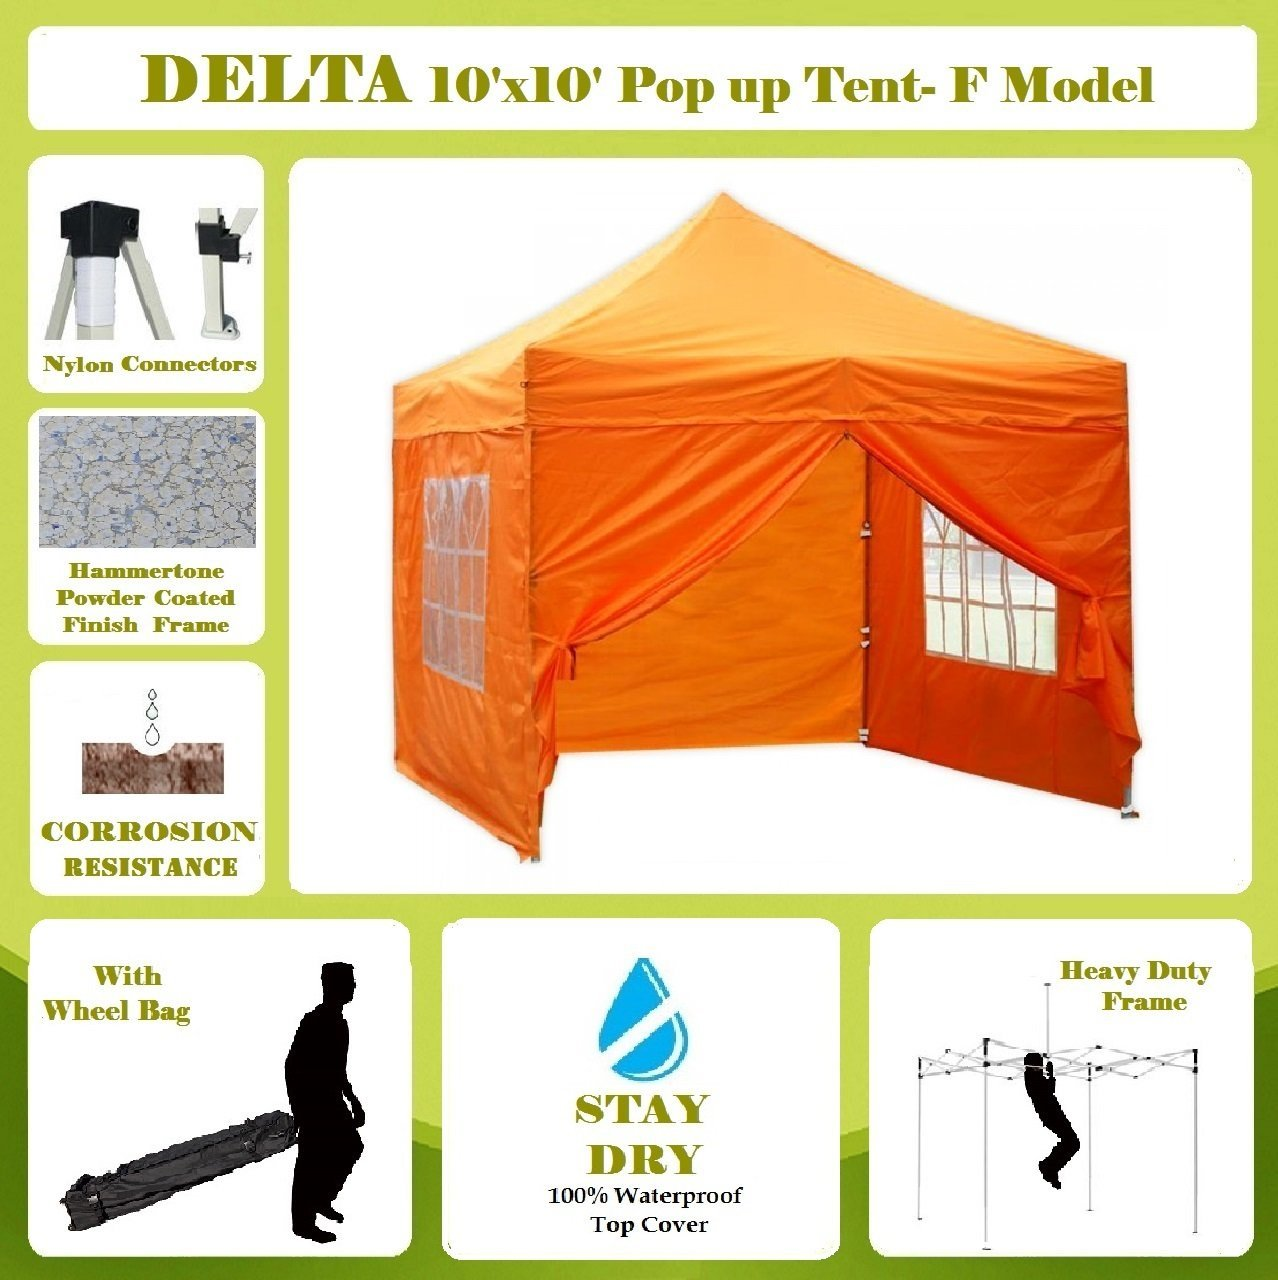 10'x10' Pop up 4 Wall Canopy Party Tent Gazebo EZ Orange - F Model Upgraded Frame By DELTA Canopies